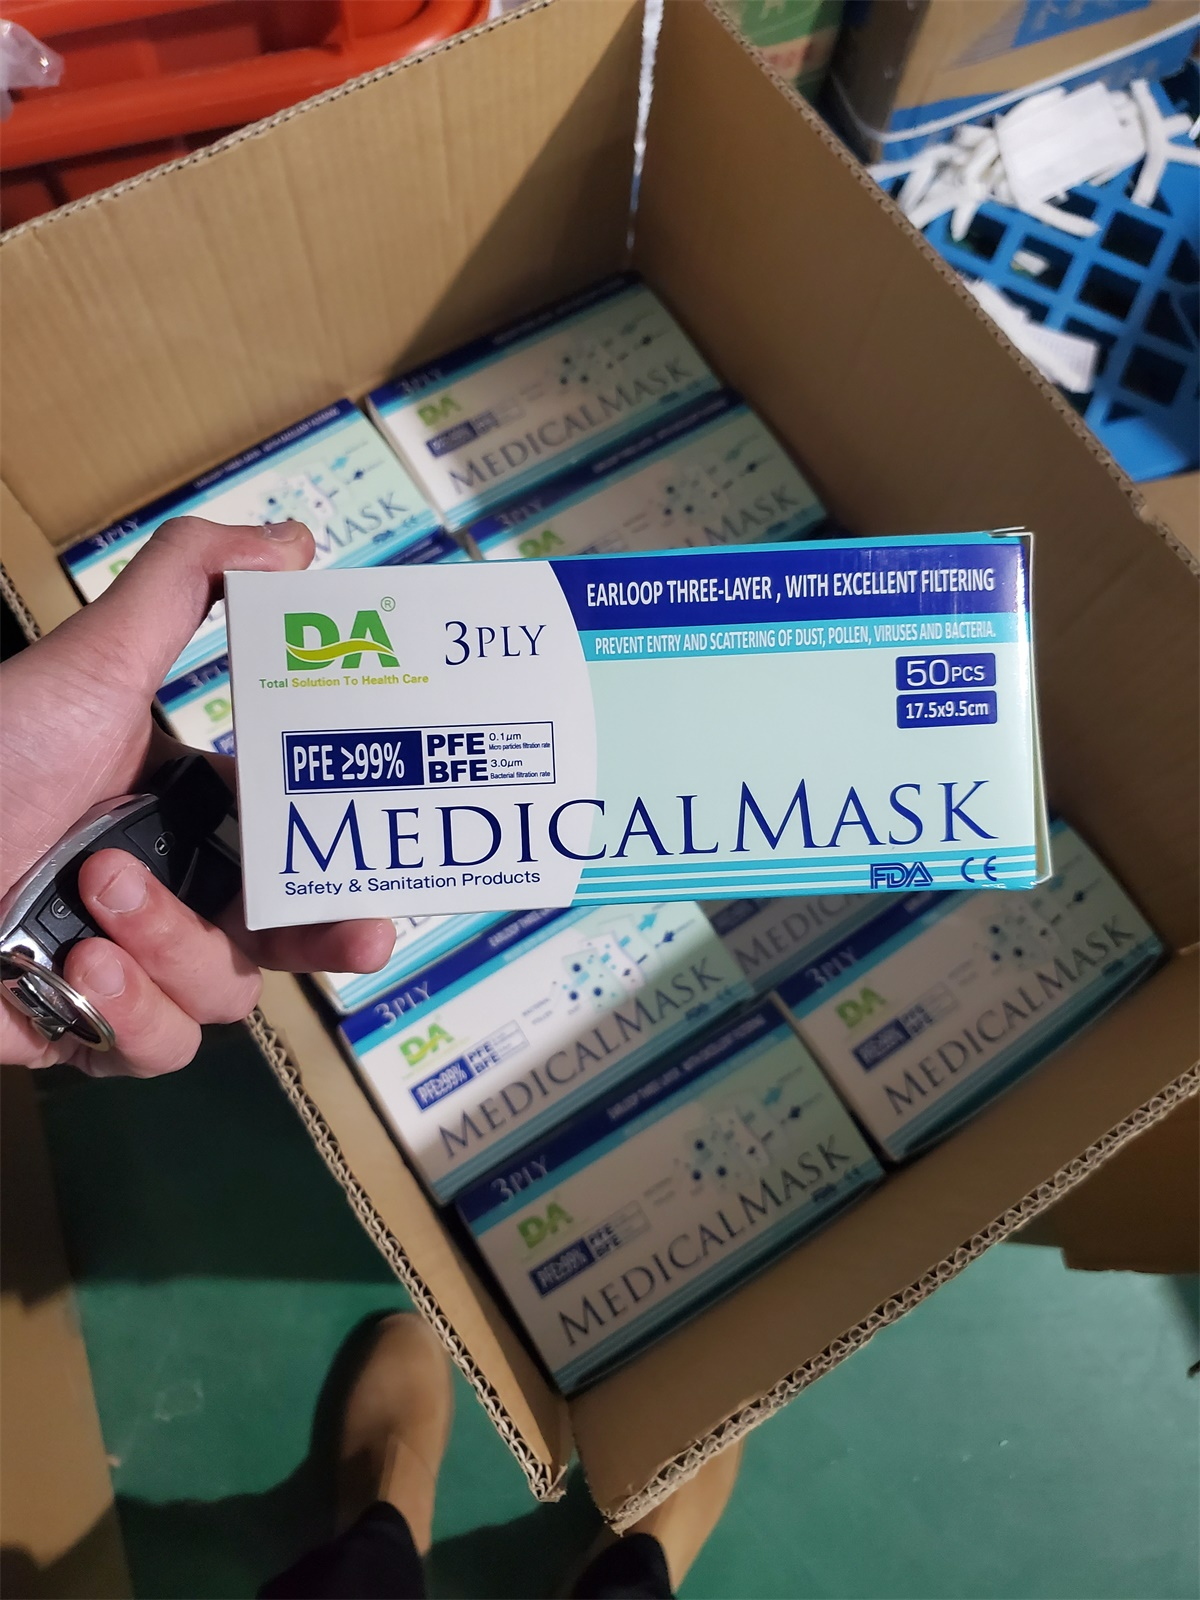 Disposable 3ply medical mask filter and melt blown cloth e 99% protective medical mask